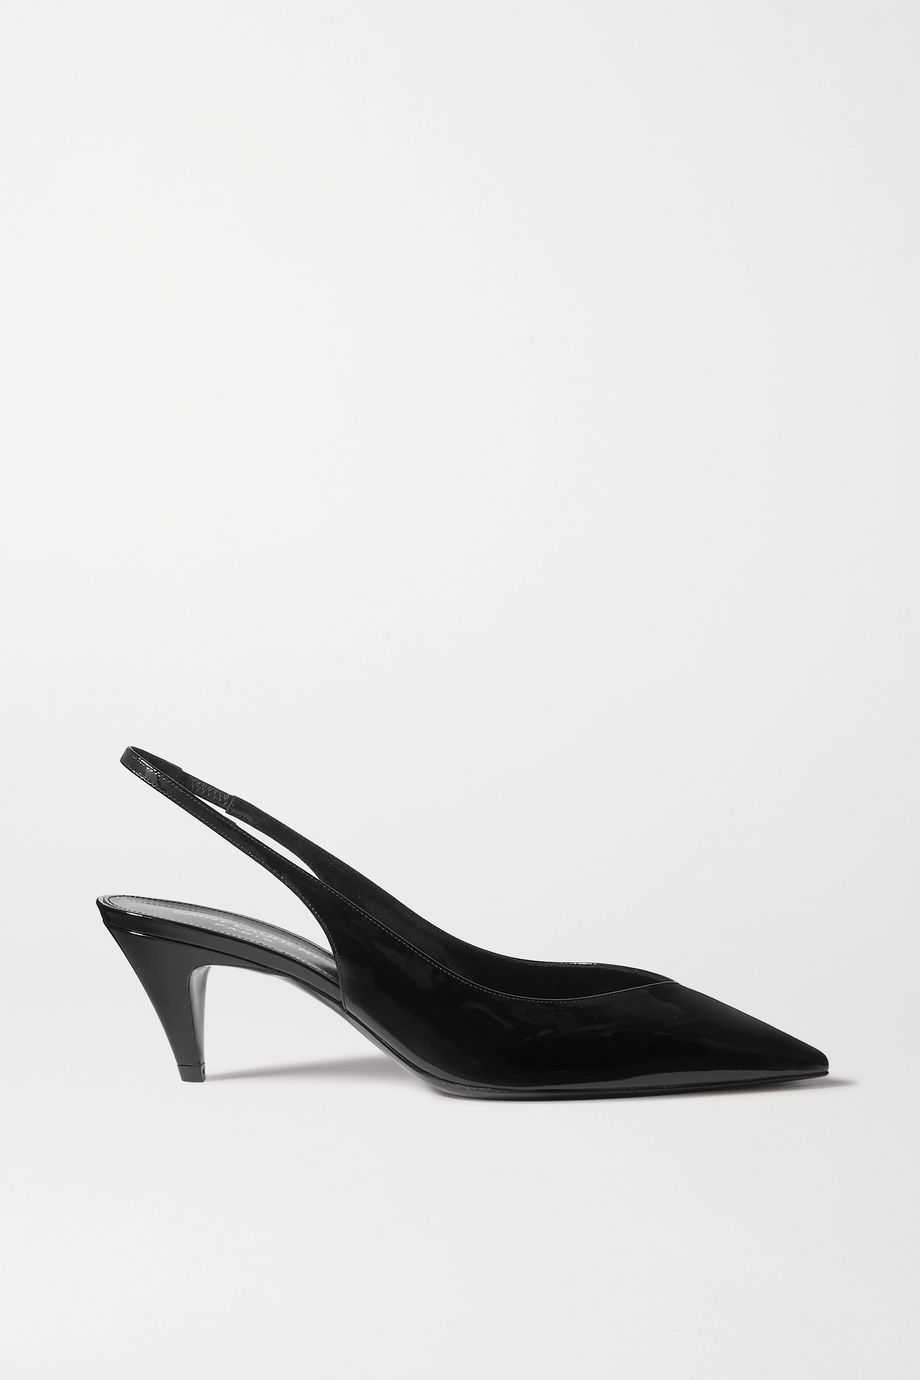 SAINT LAURENT Kiki patent-leather slingback pumps